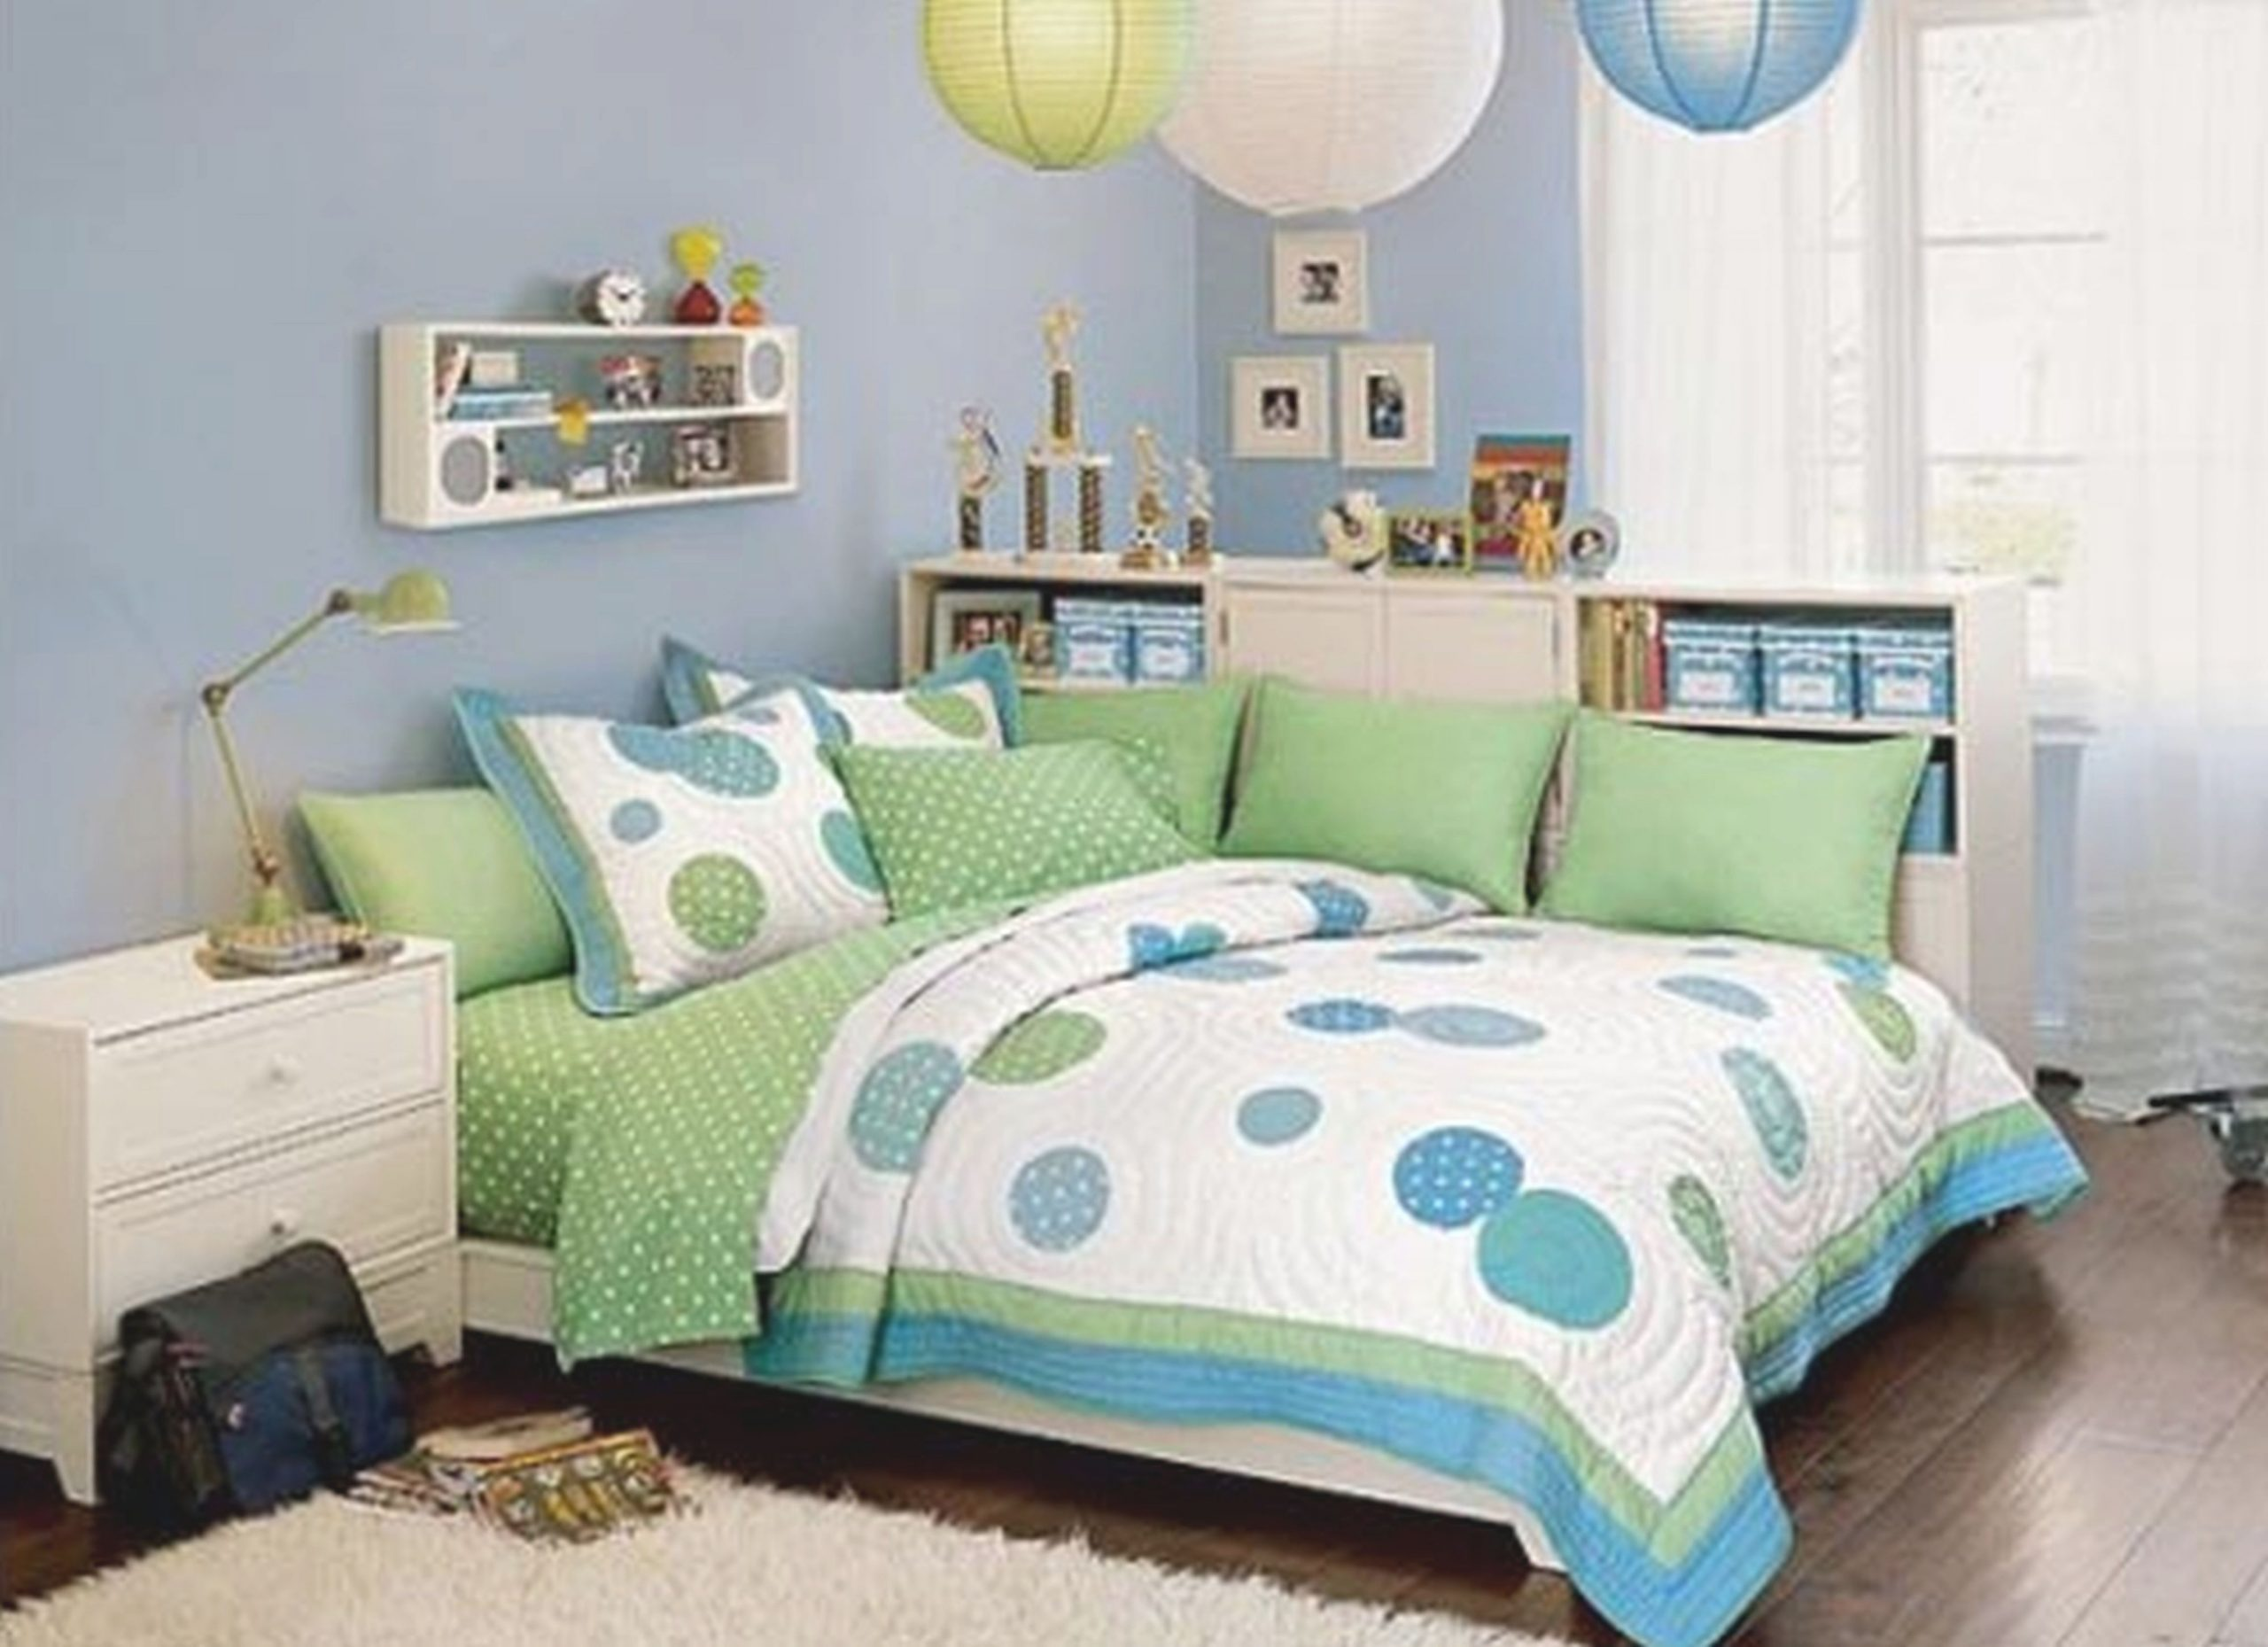 Couple Room Decoration Couples Bedroom Designs For A Small throughout Blue And Green Bedroom Decorating Ideas